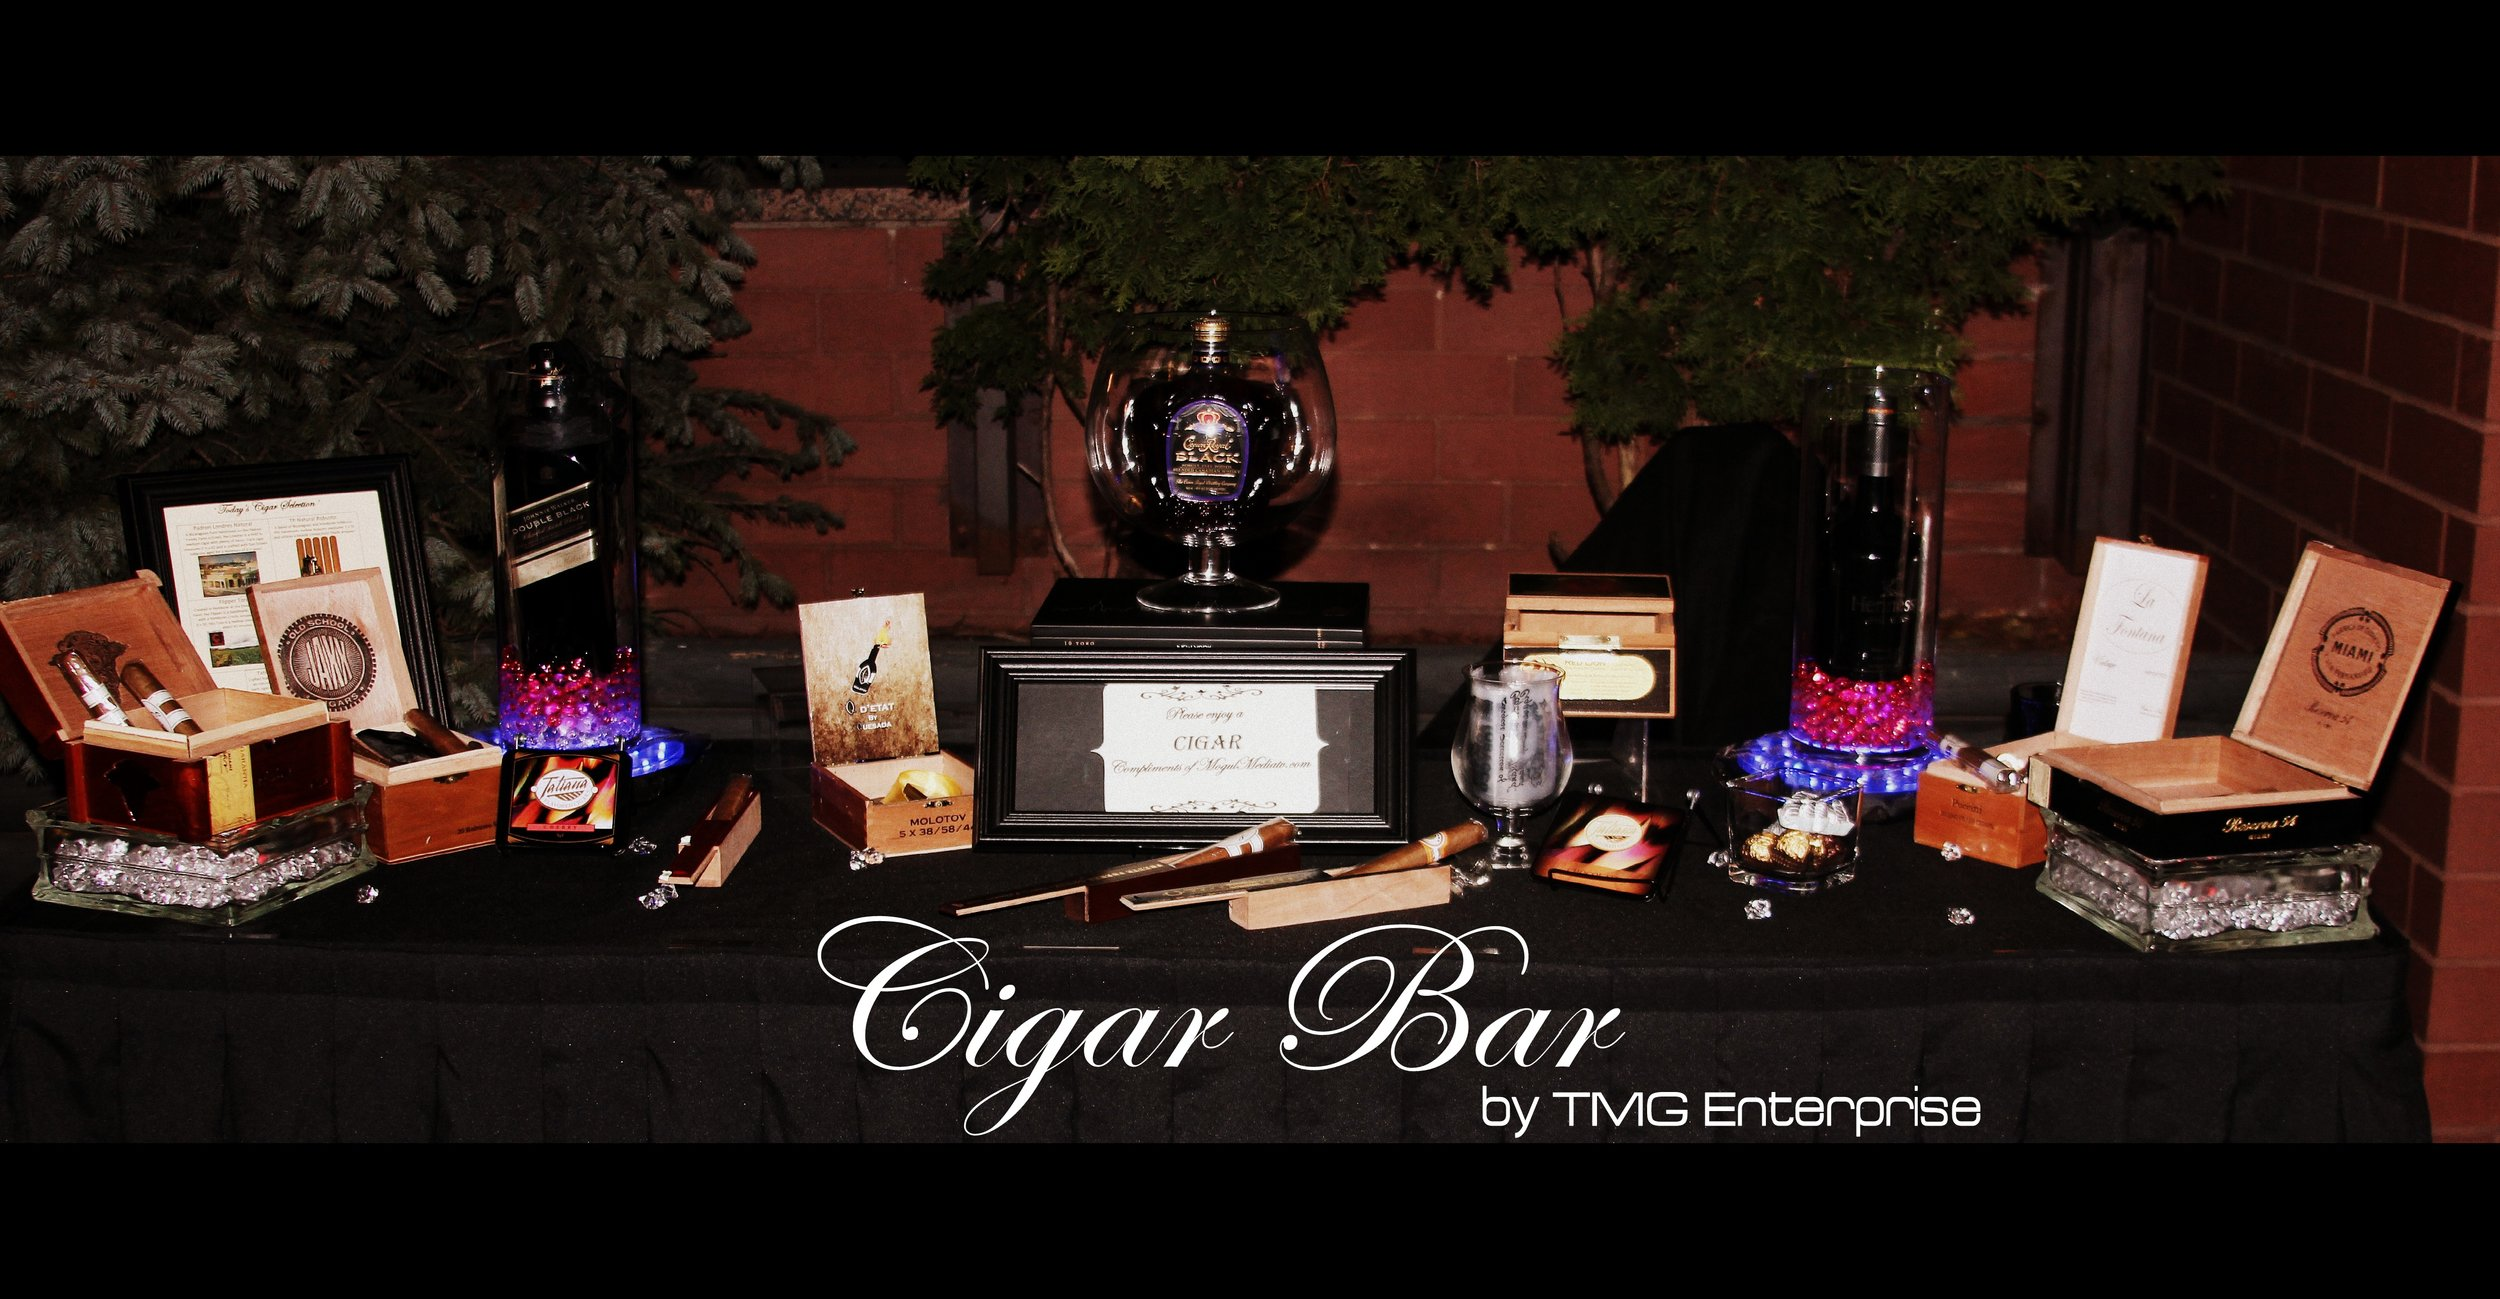 CIGAR BAR by TMG Enterprise.JPG